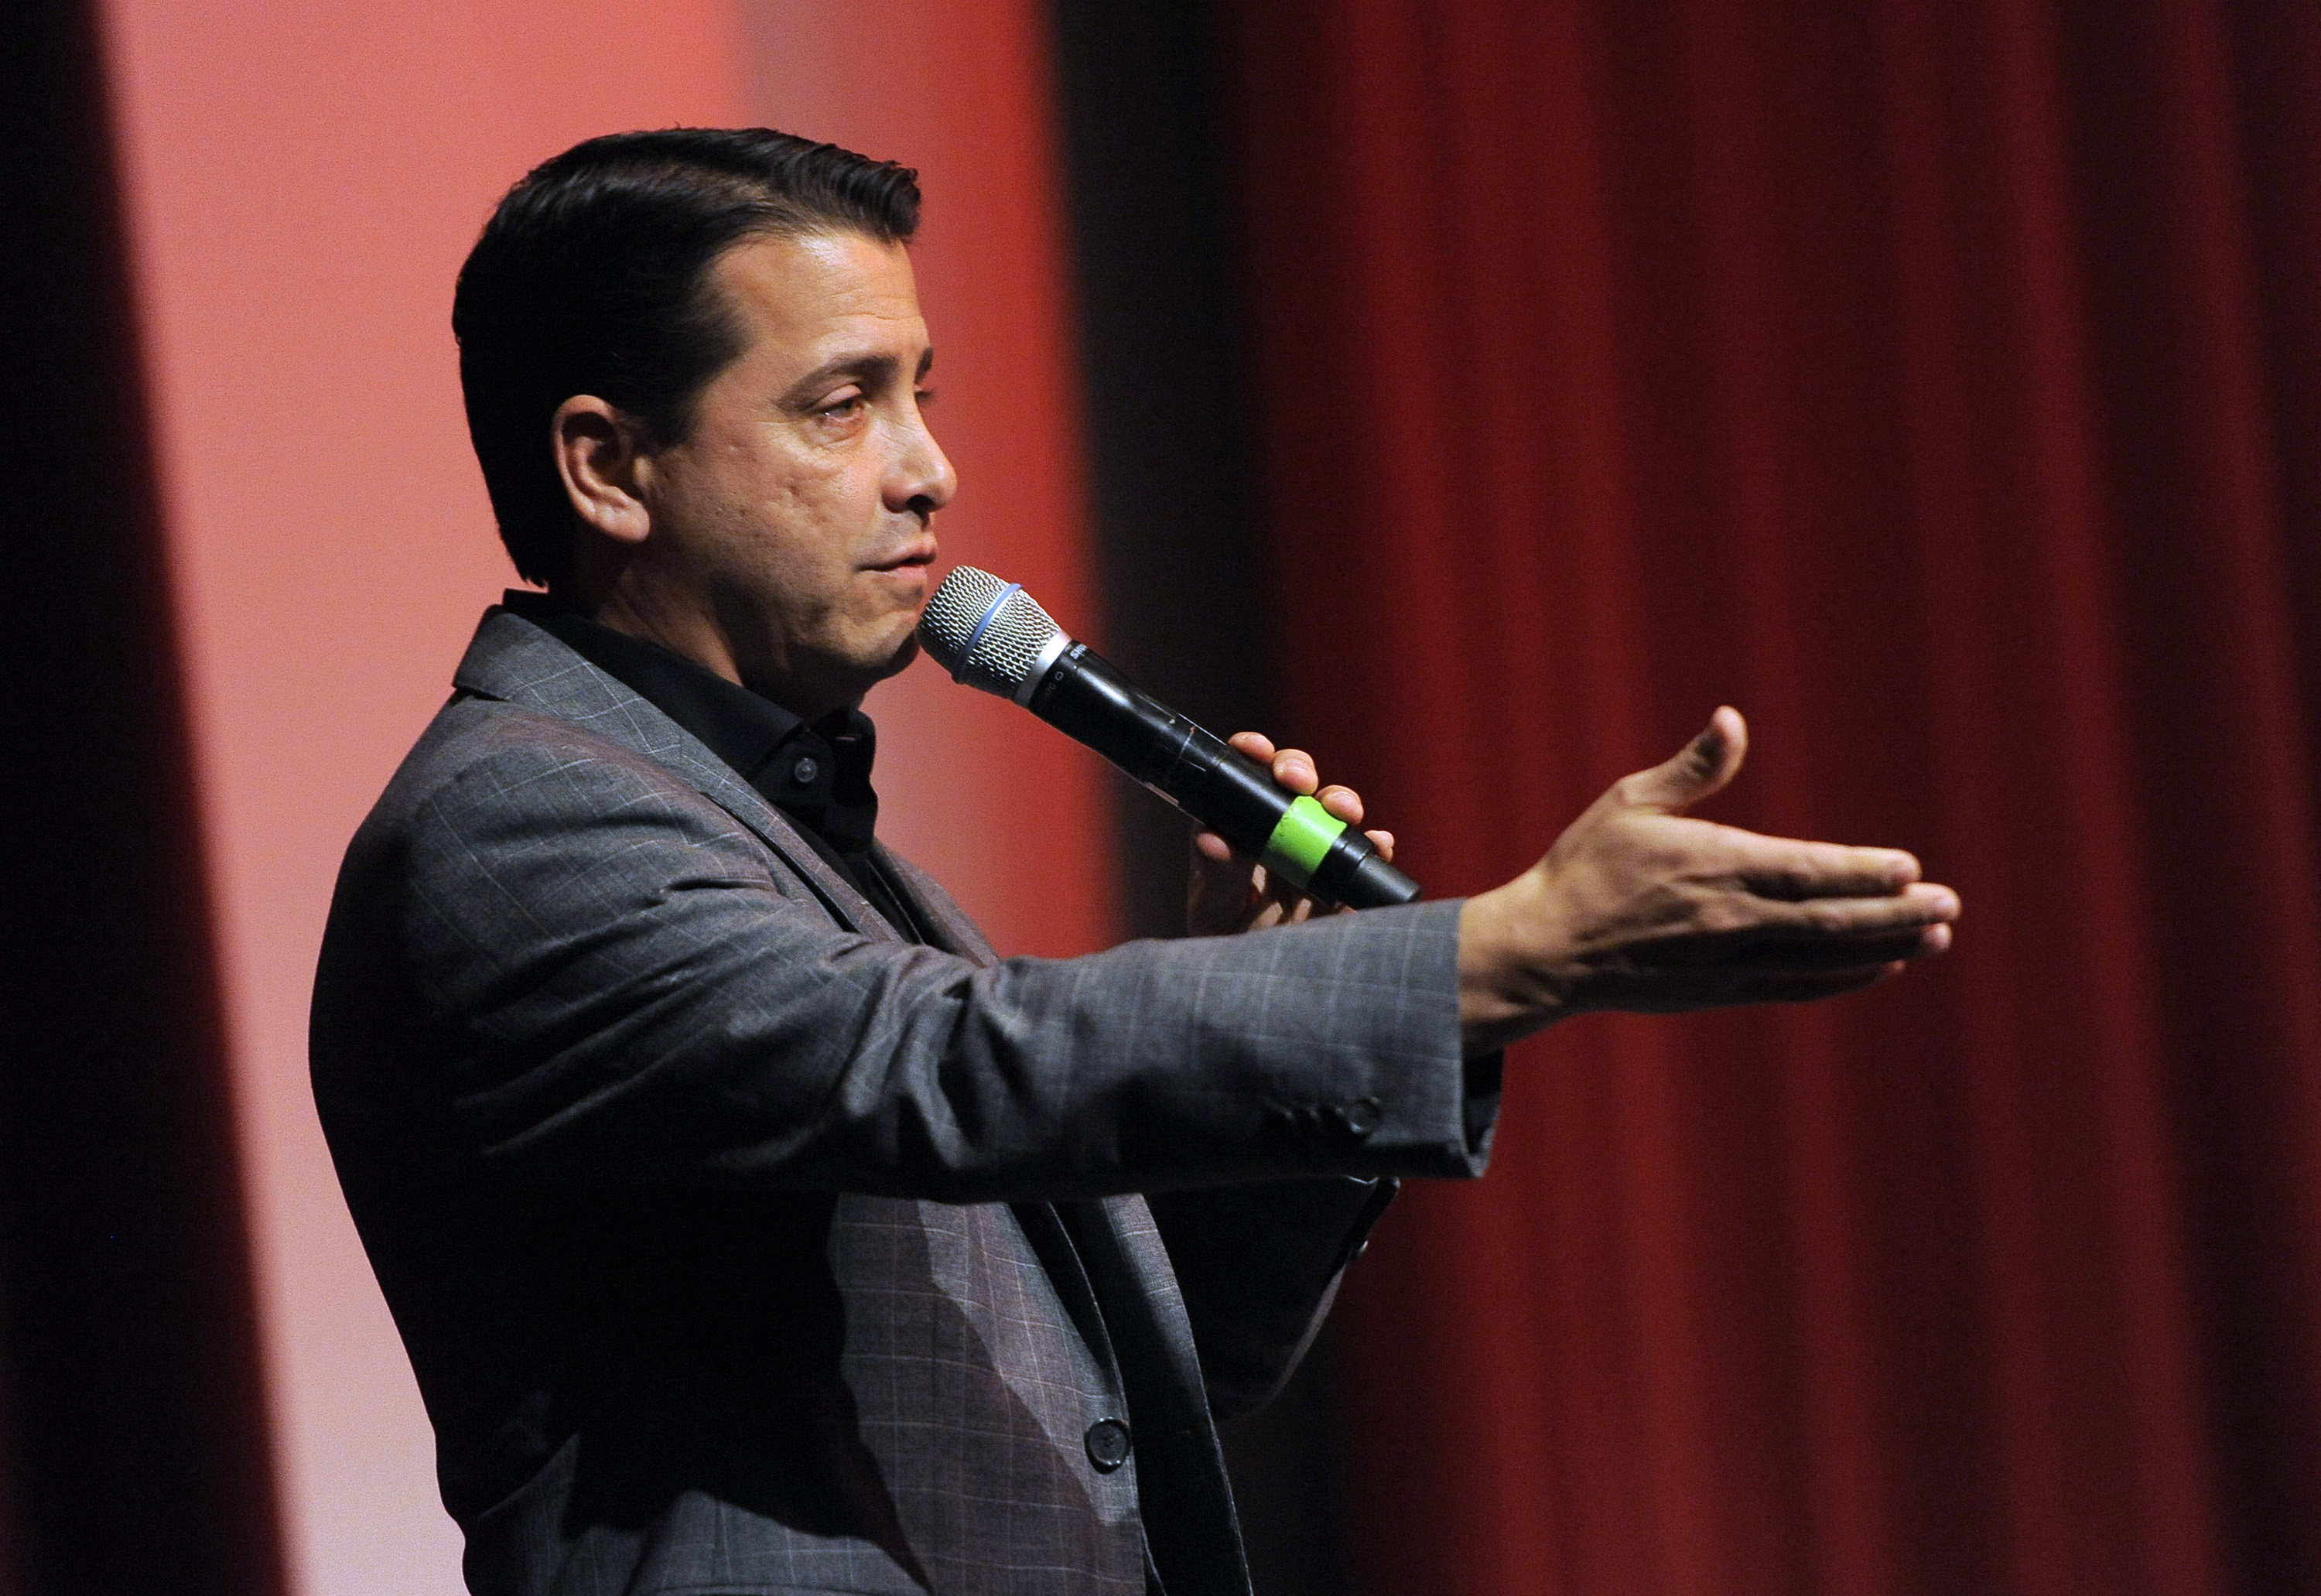 David Glasser speaks during The Weinstein Company and Lexus Present Lexus Short Films at the Directors Guild of America Theater on Thursday, Feb. 21, 2013, in Los Angeles. (Photo by Chris Pizzello/Invision/AP)